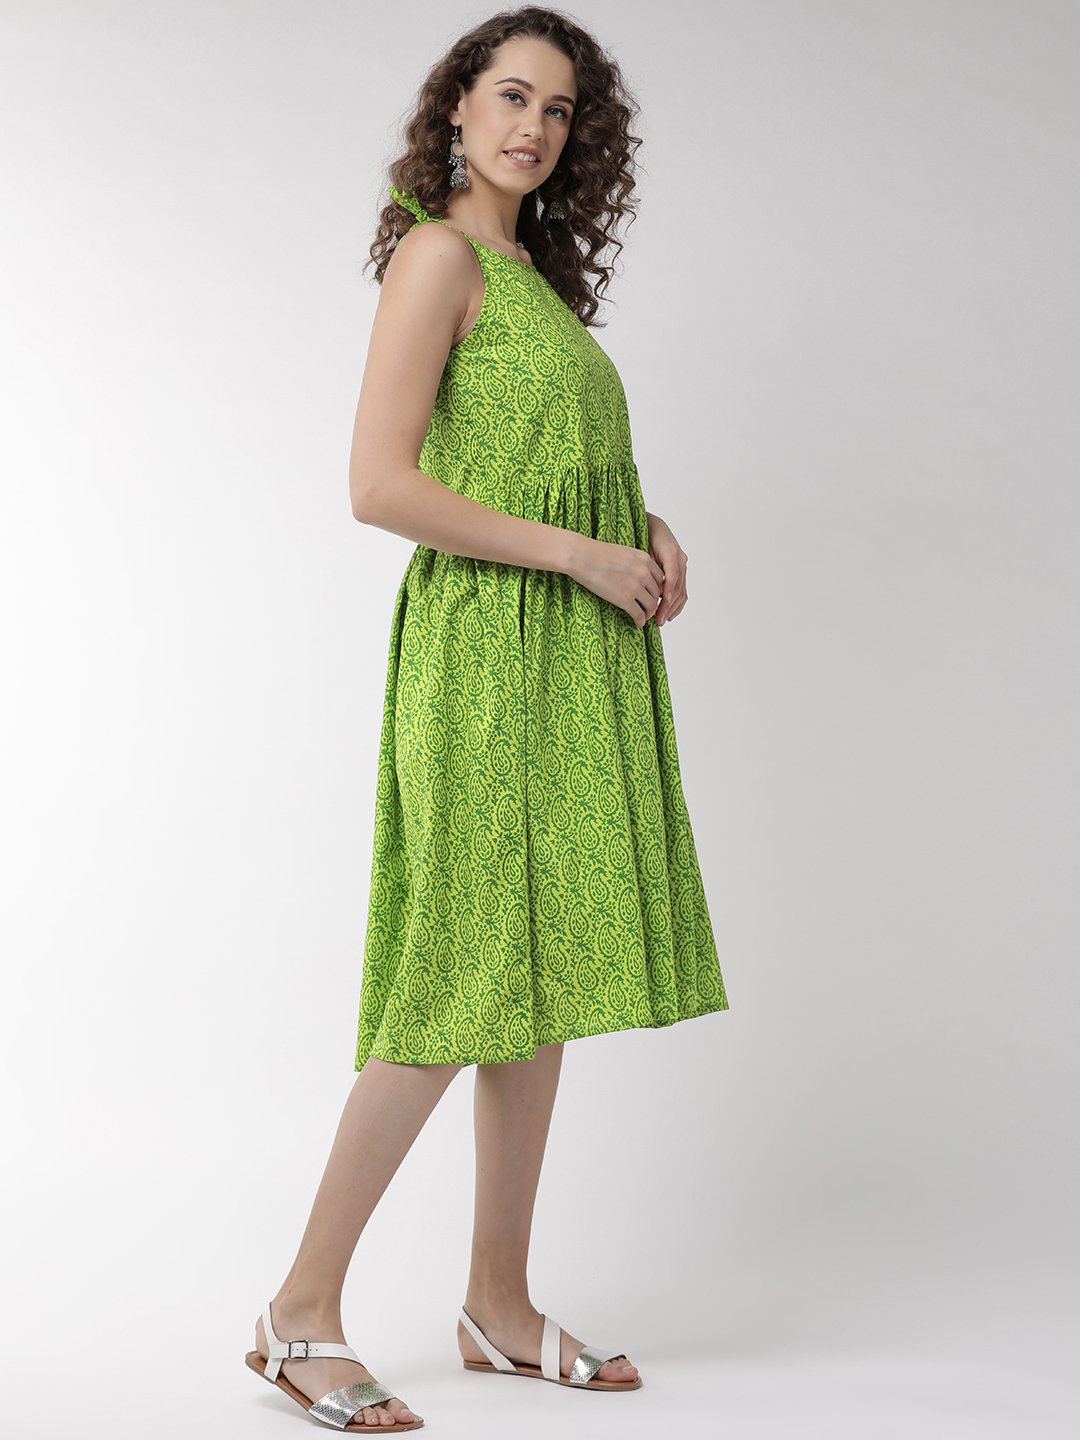 Green Printed Halter Neck Dress